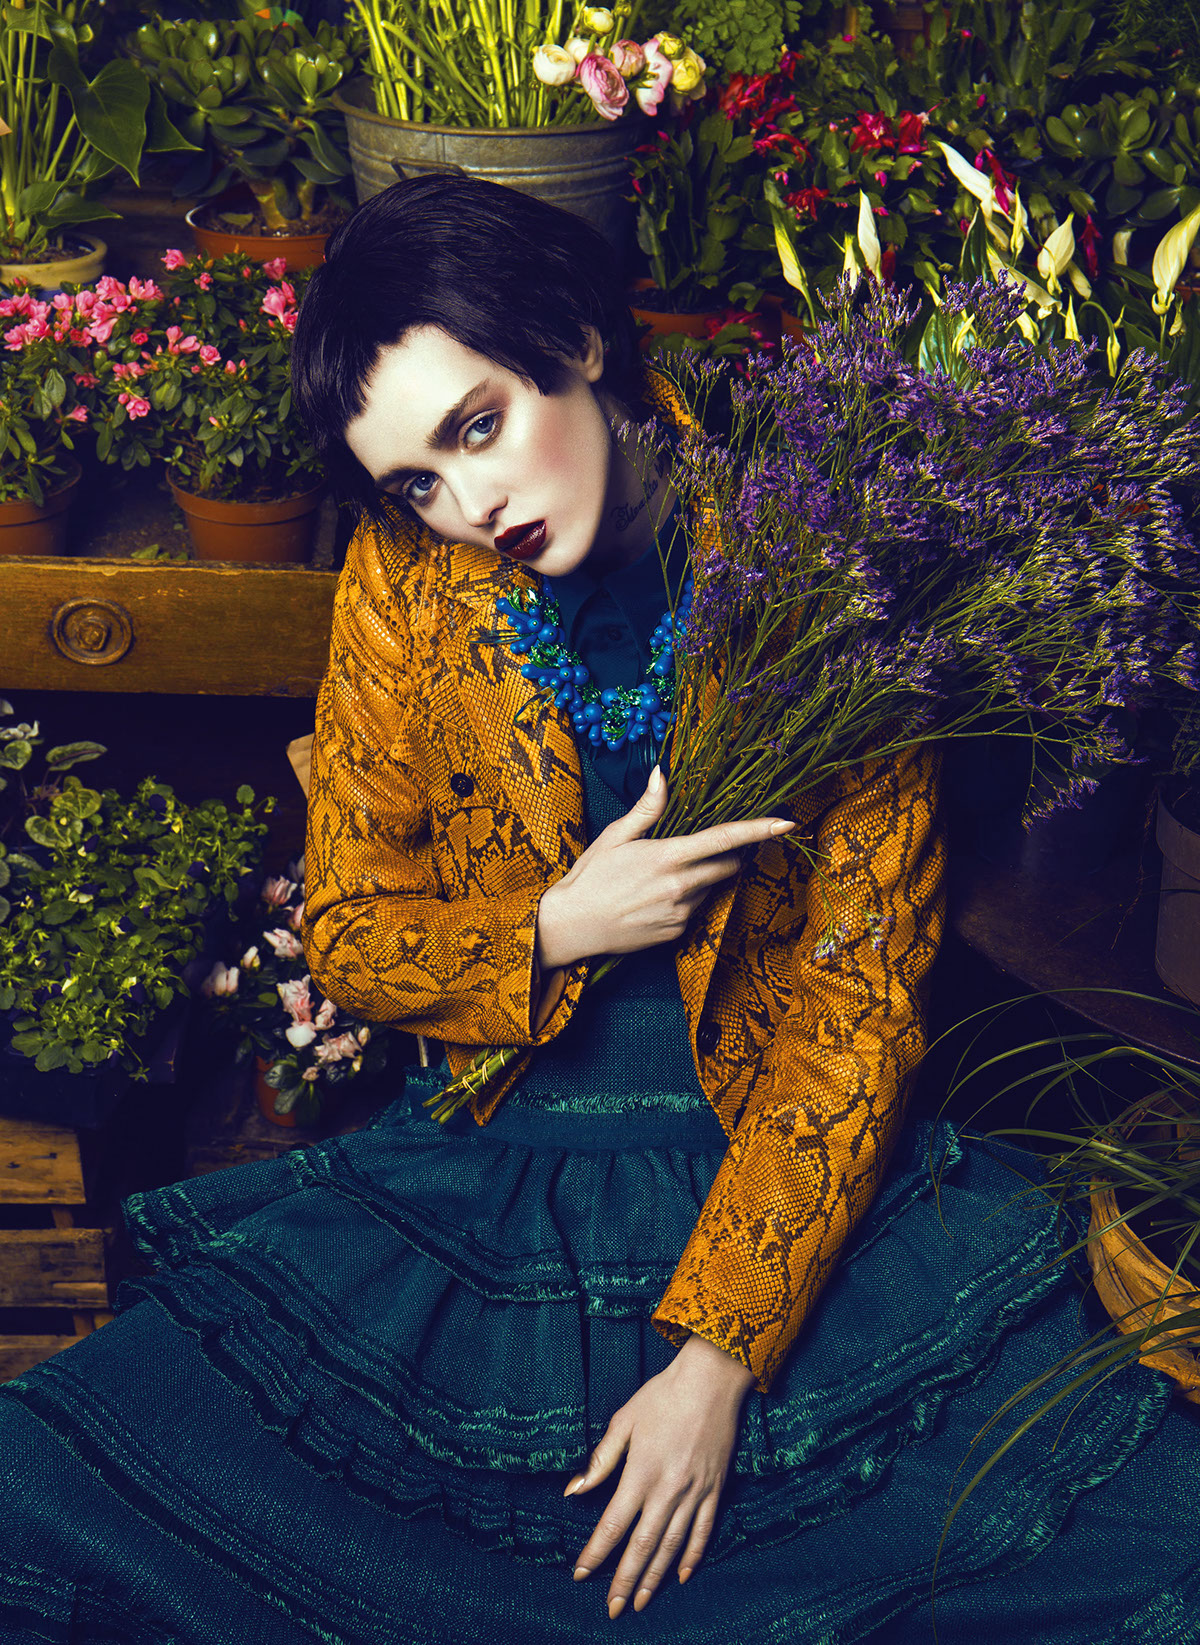 Les bouquets d'Aster for The Claw Fashionbook / фотограф Quentin Legallo